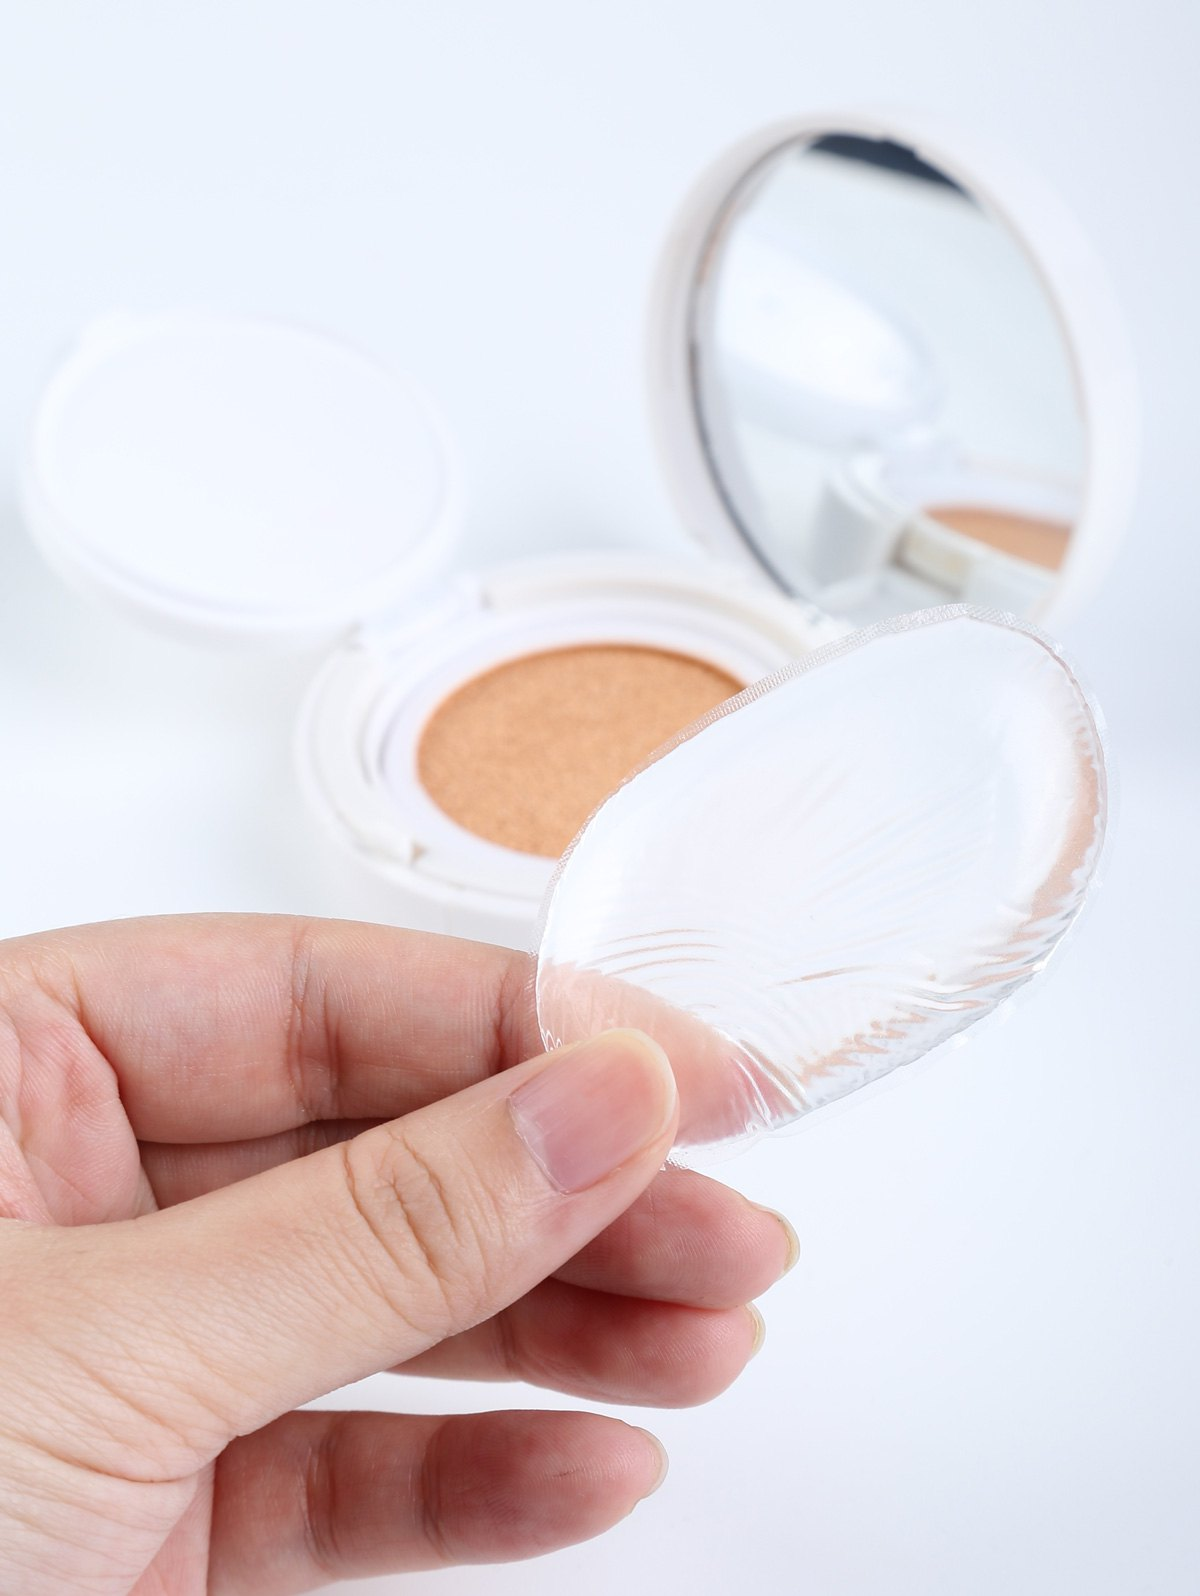 Oval Silicone Makeup Sponge - Transparent